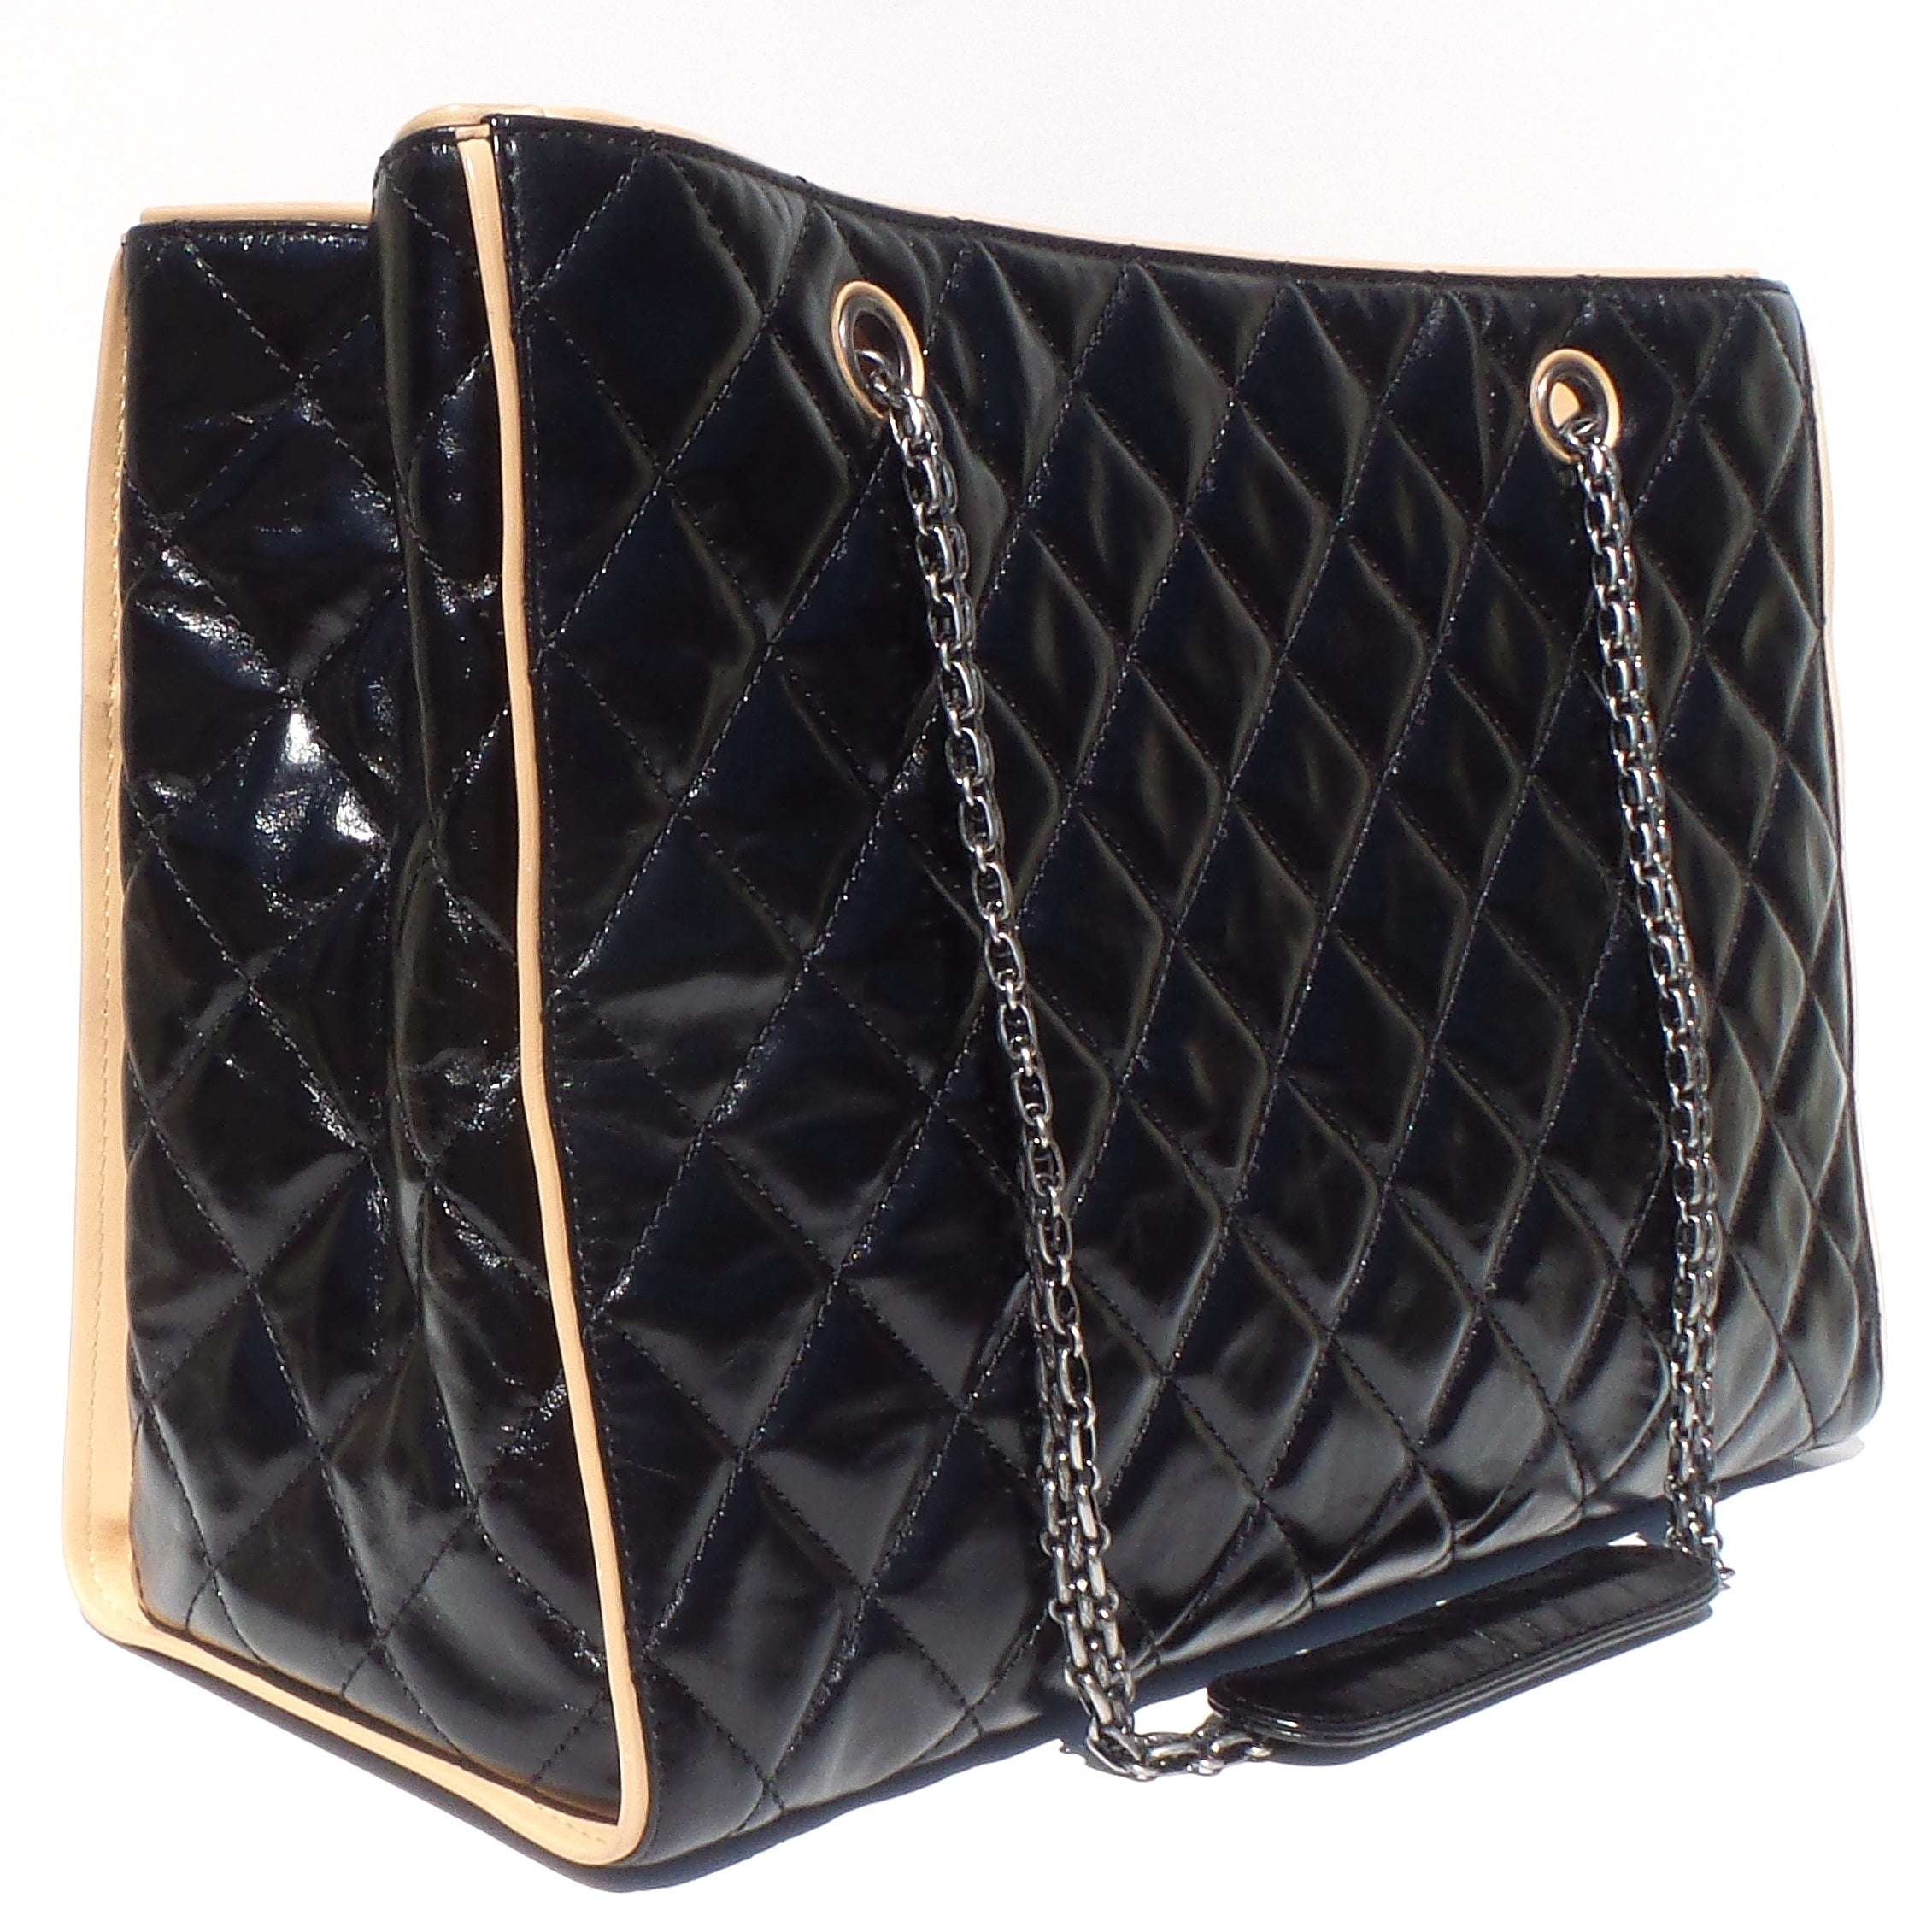 CHANEL Black Glazed Quilted Leather Beige 2.55 Reissue Grand Shopping Tote Bag